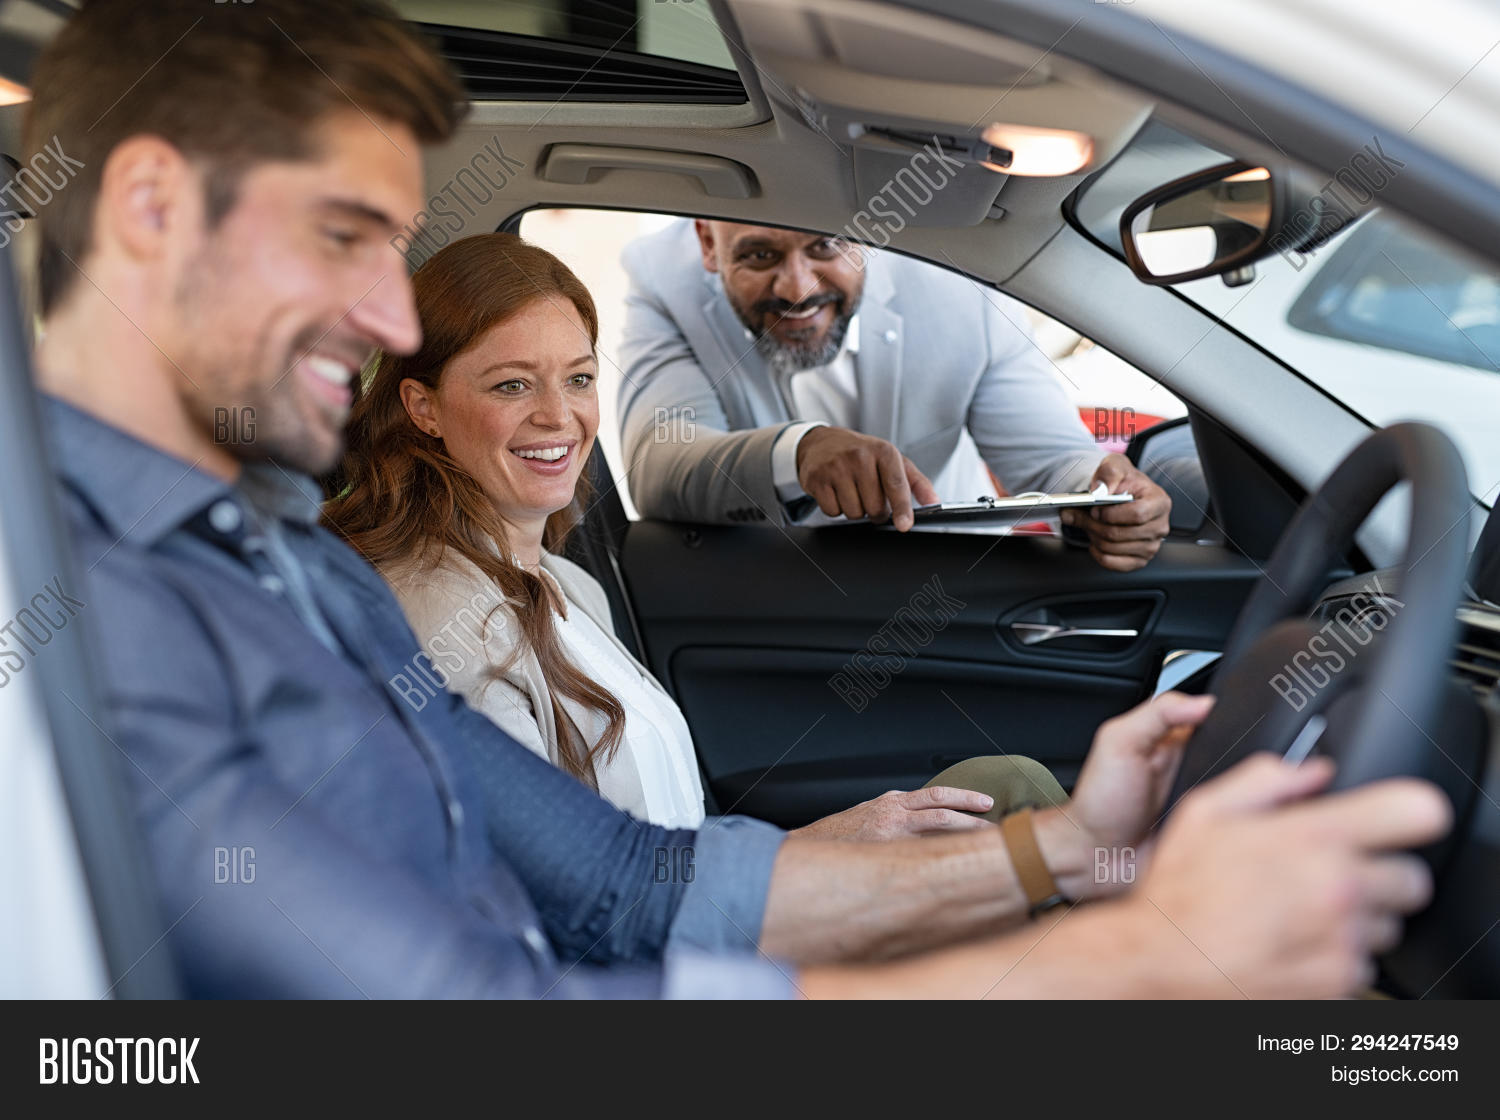 agent,auto,automobile,automotive,buy,car features,car interior,checking,cheerful,choice,choosing,client,comfort,couple,customer,dealer,dealership,drive,feature,hands on steering wheel,happy,holding,interior car,looking,luxury,man,new,purchase,purchasing,sales,salesman,satisfaction,satisfied customer,sell,seller,showroom,sitting,smile,steering wheel,test,test drive,test drive car,transport,try,vehicle,wheel,woman,young couple